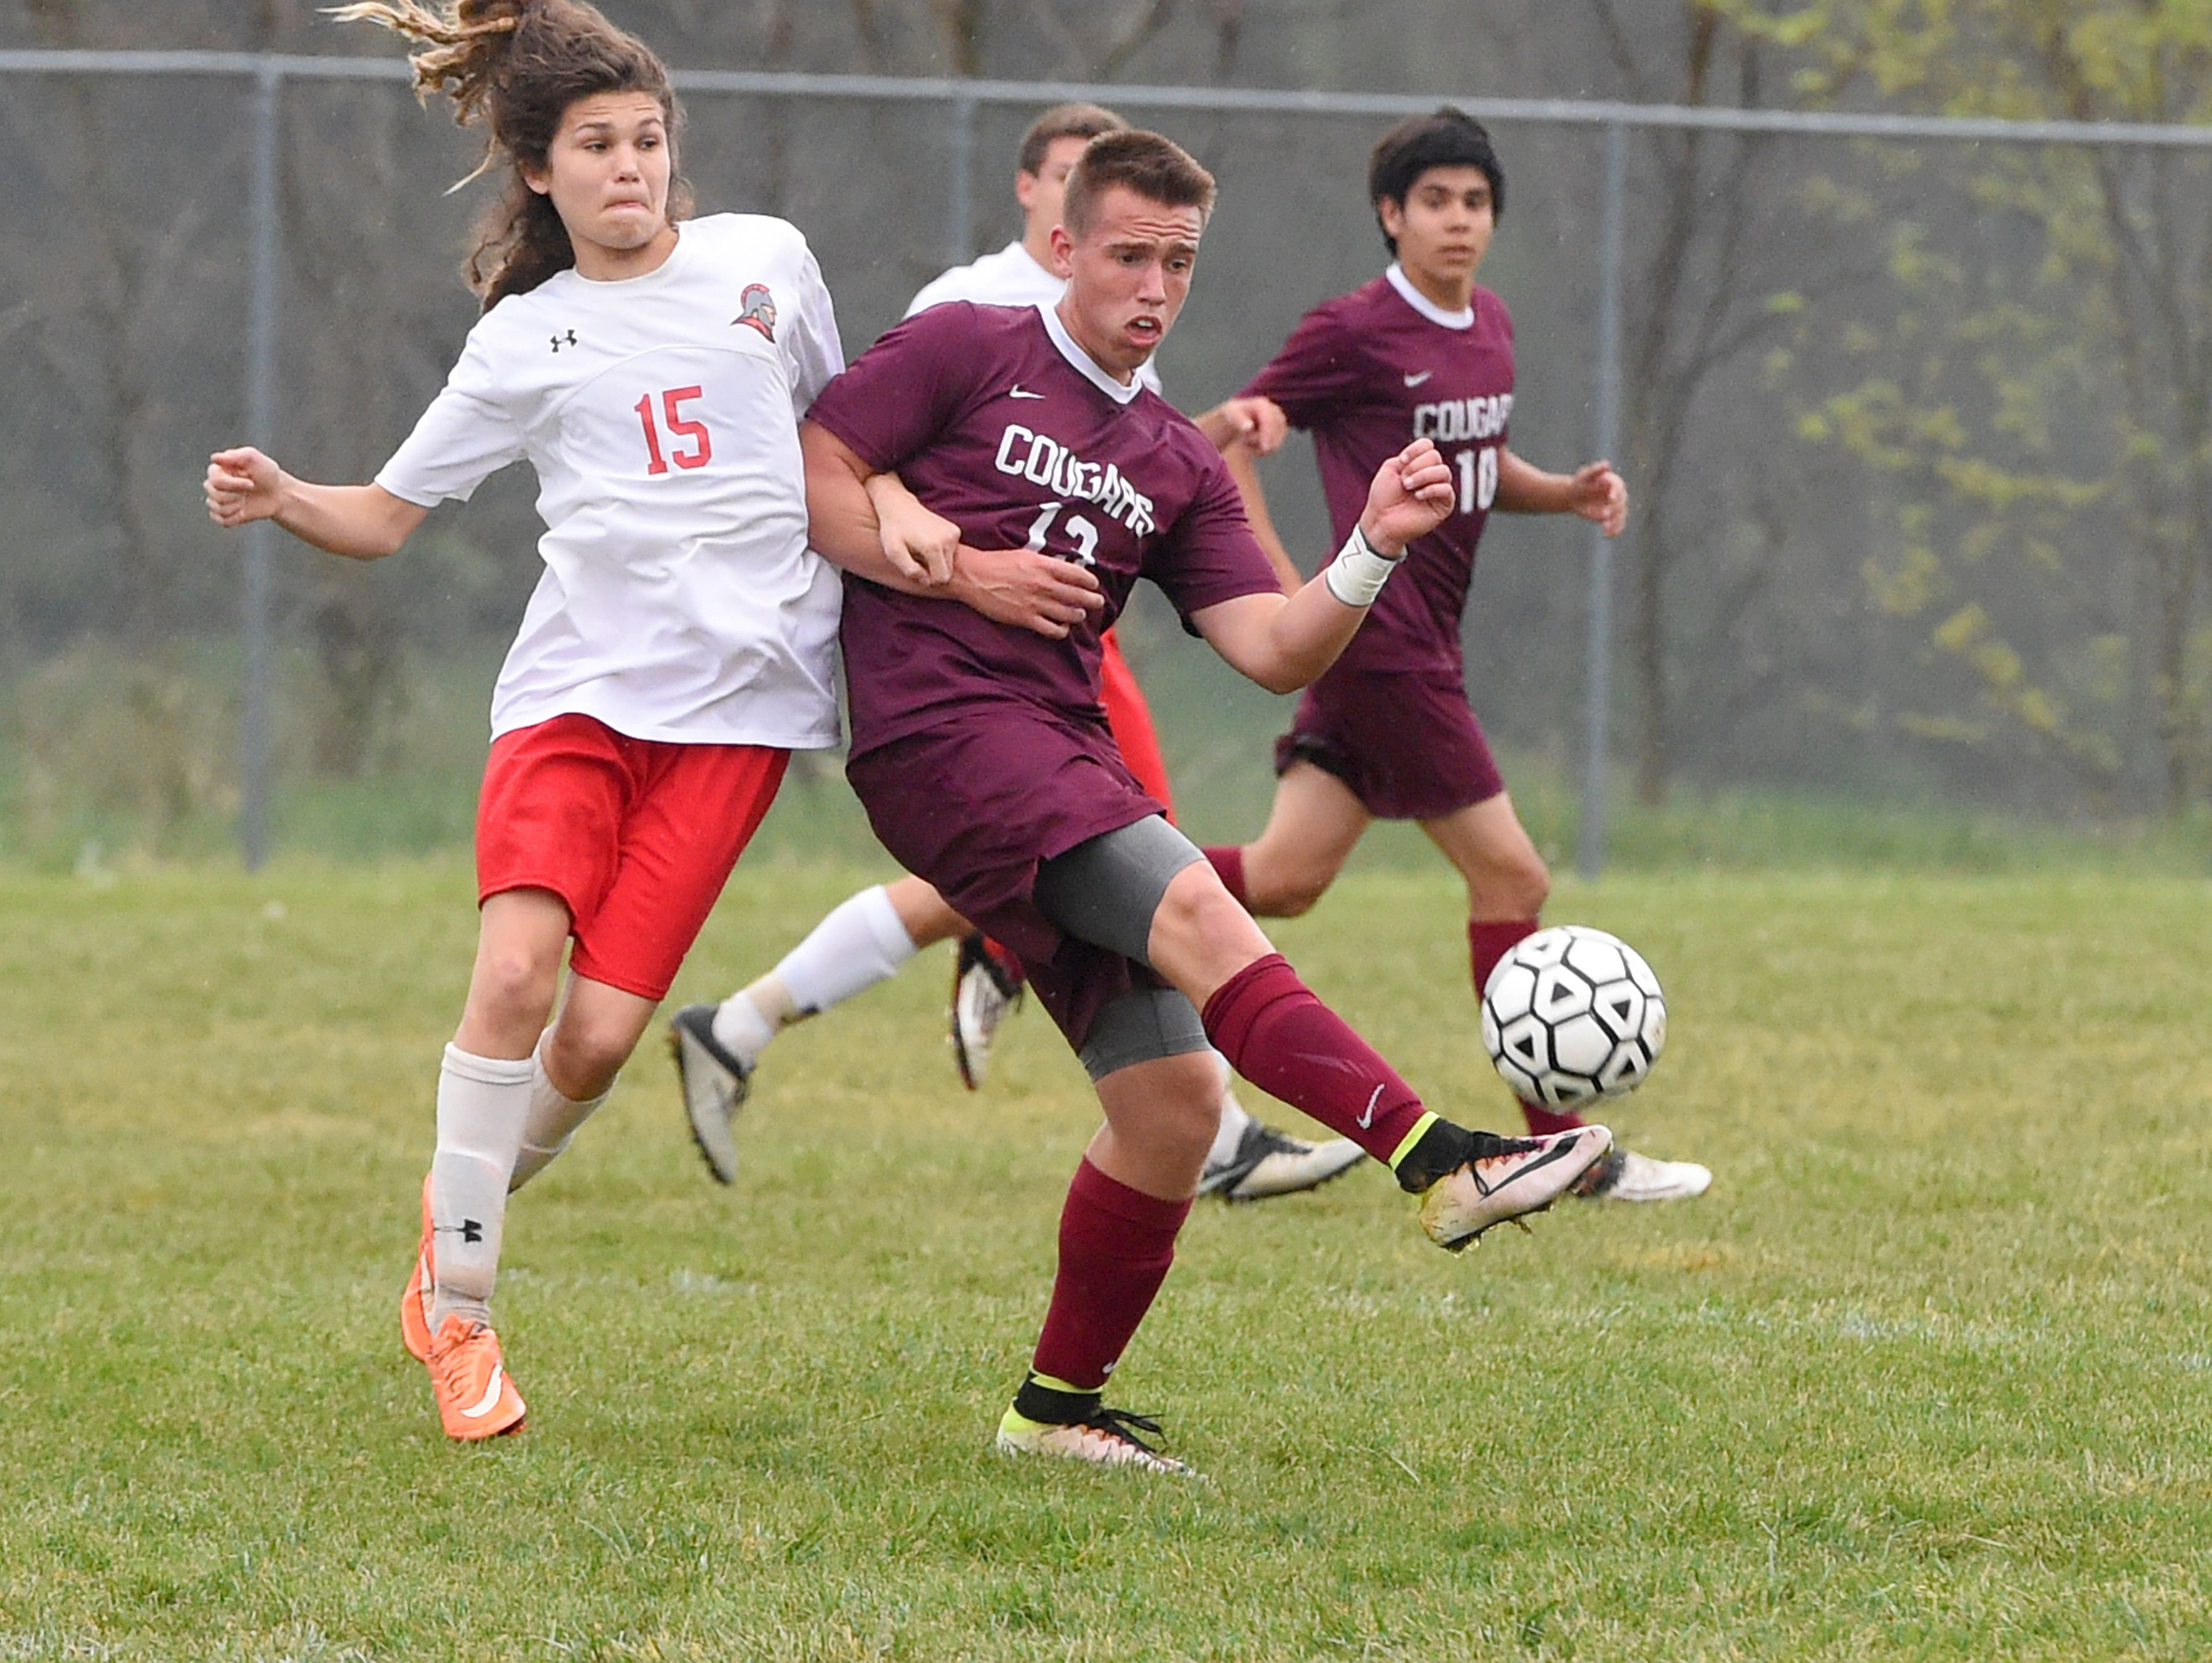 Stuarts Draft's Joshua Huff kicks the ball before Riverheads' Isaiah Knopp during a soccer game played in Greenville on Friday, April 22, 2016.